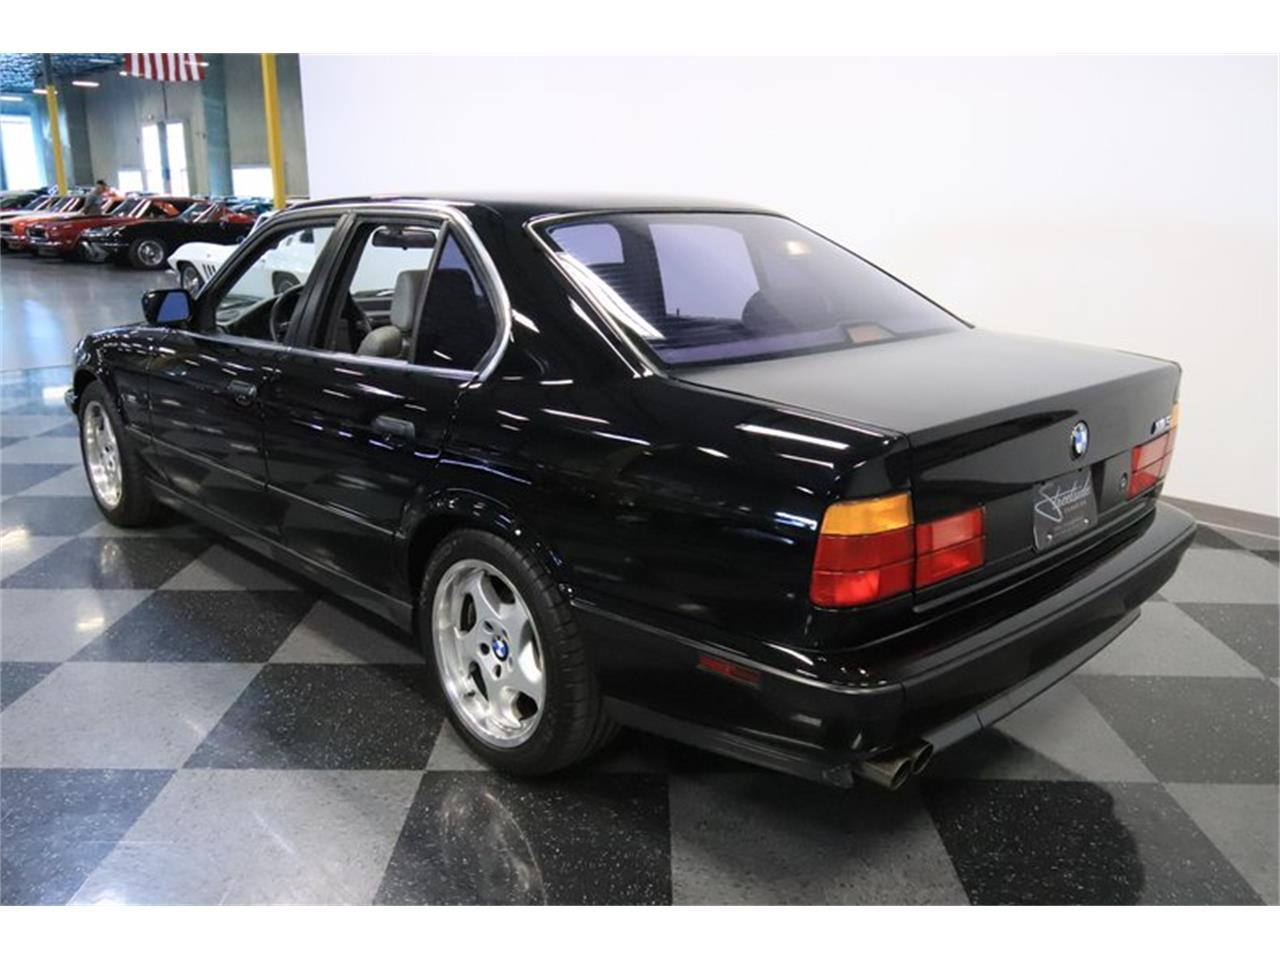 Large Picture of 1991 BMW M5 located in Arizona Offered by Streetside Classics - Phoenix - PUPZ